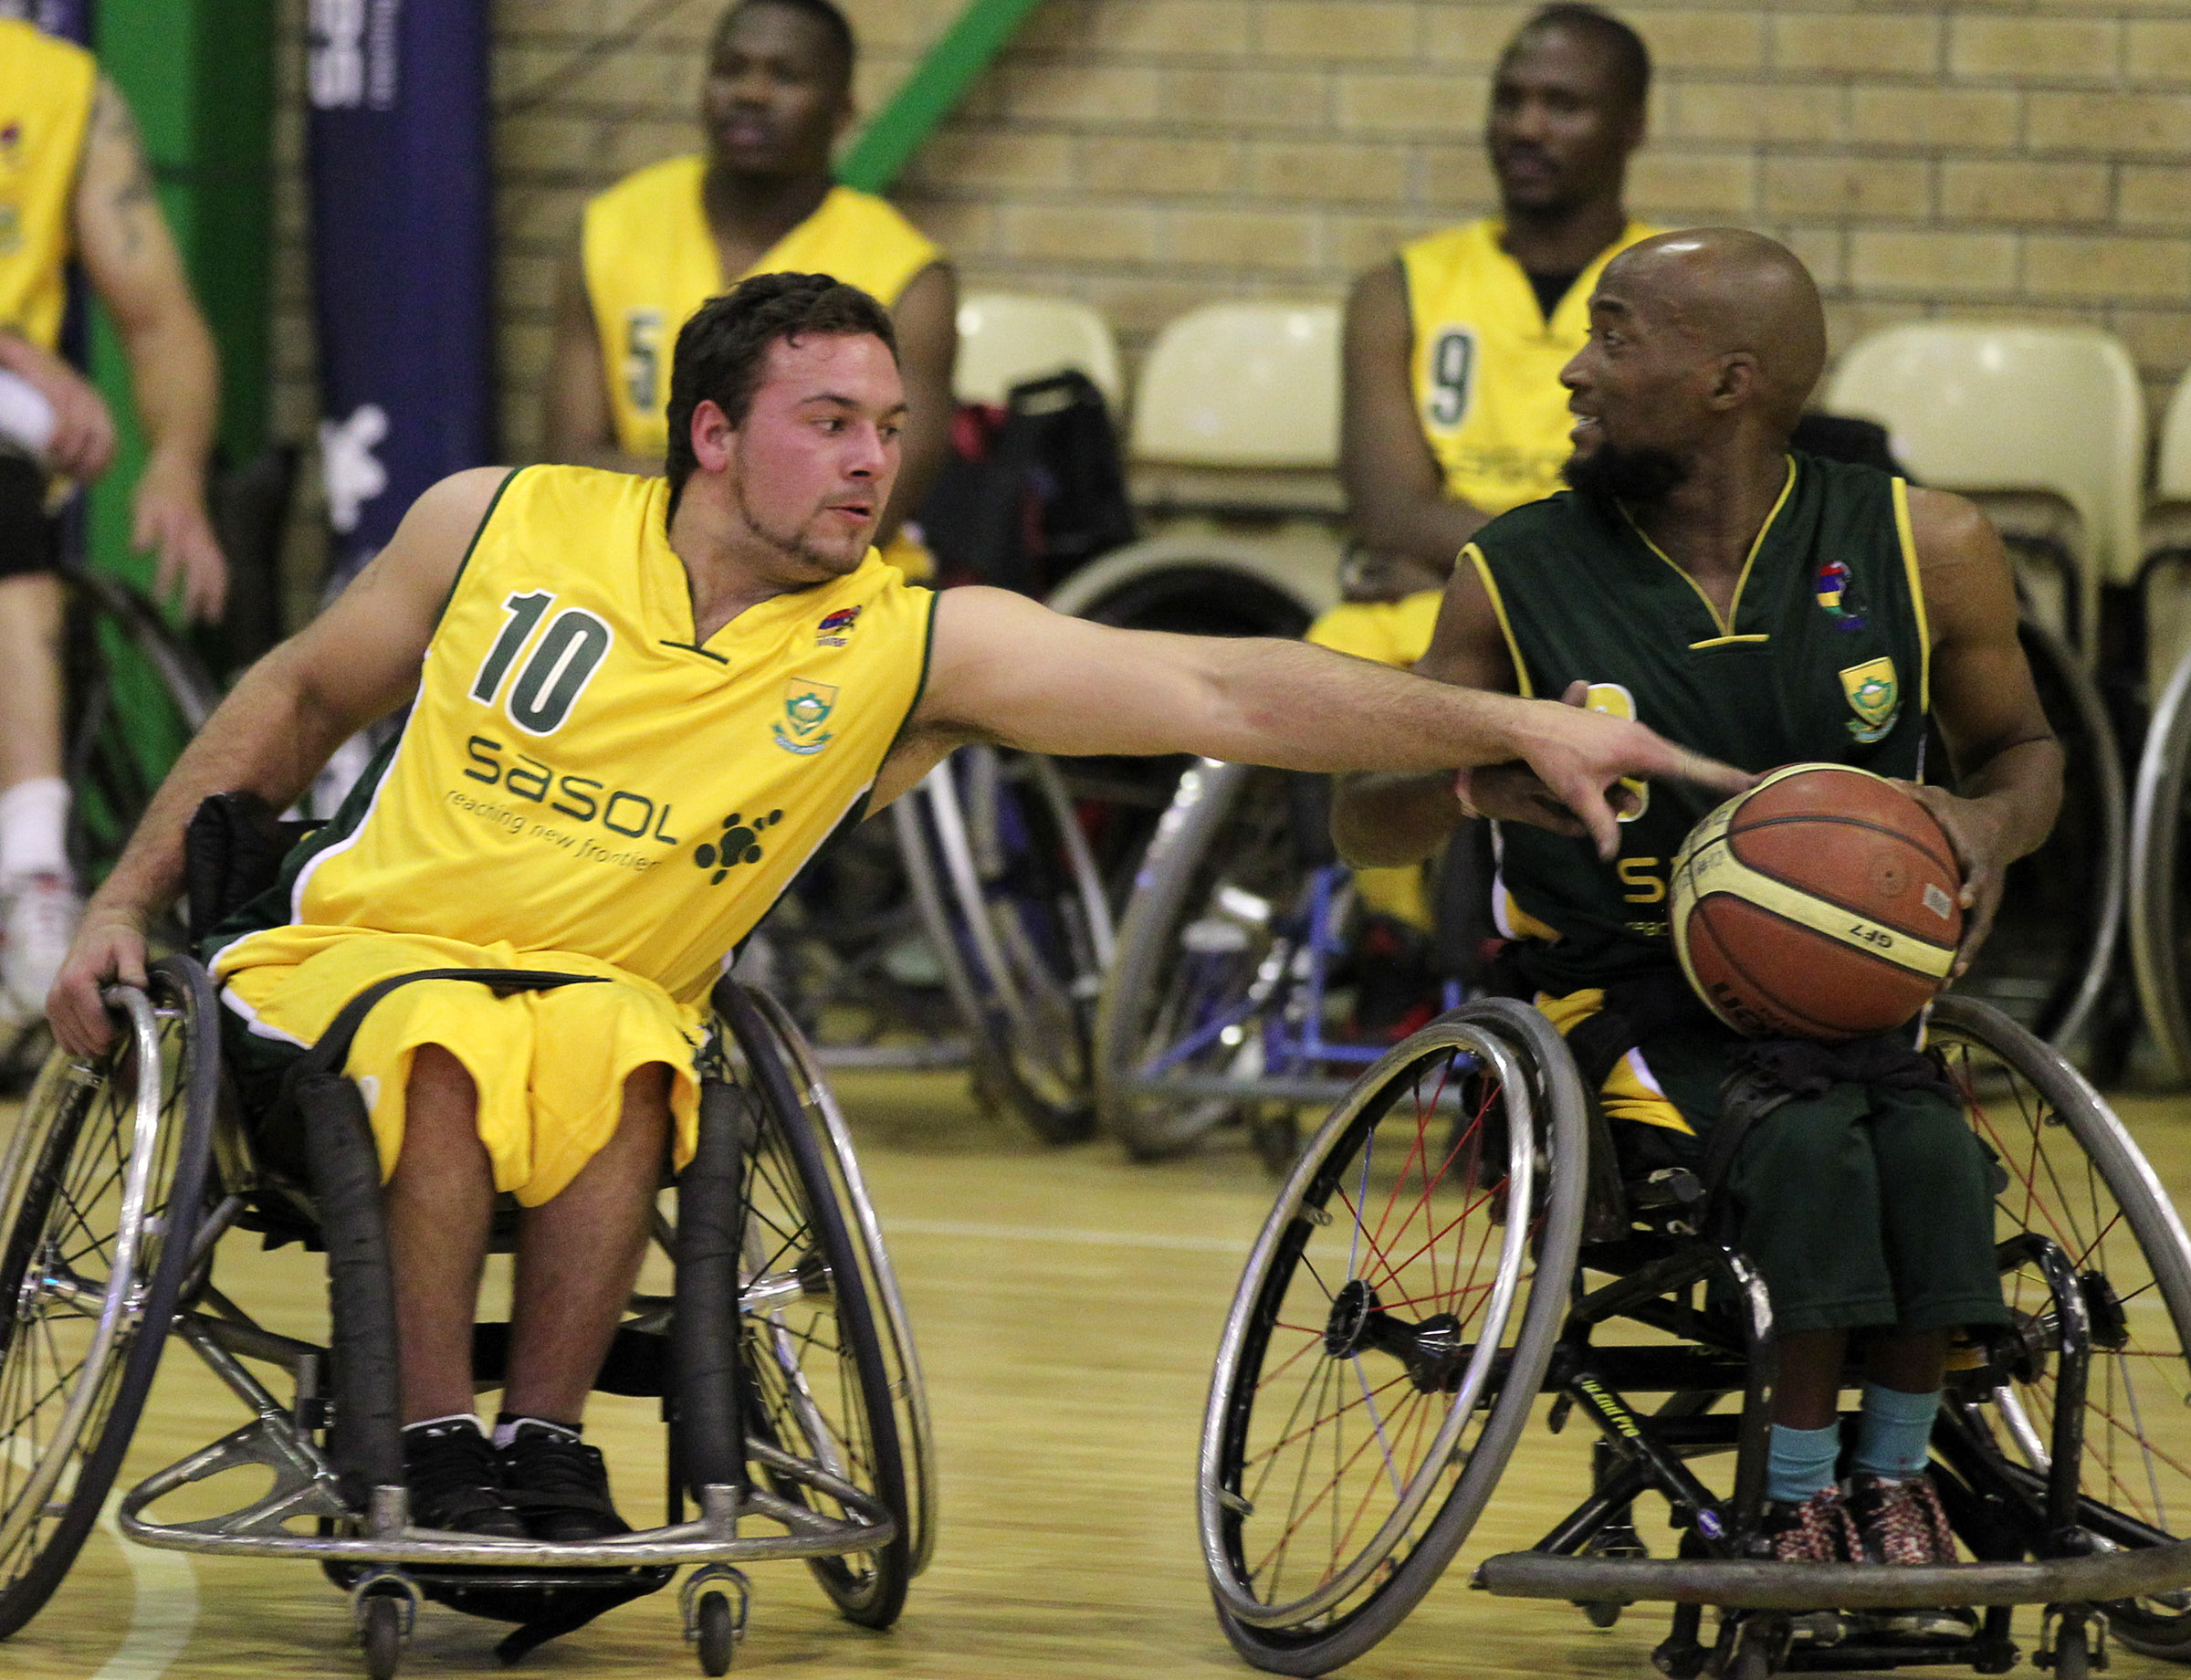 Nortje leads wheelchair basketballers to Golden win